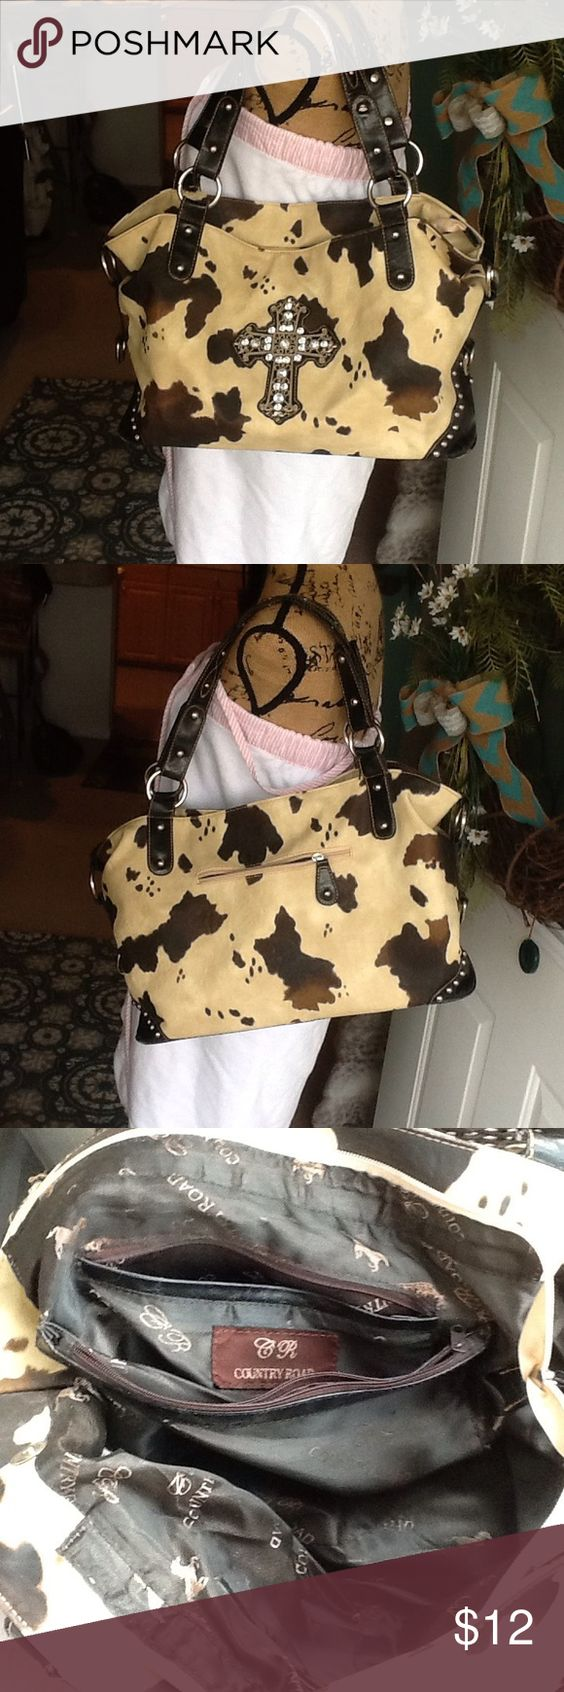 """Boutique bag For the western girl, very cute bag,measures 14 by10, very roomy, straps measure11"""" great condition inside and out country road Bags Shoulder Bags"""